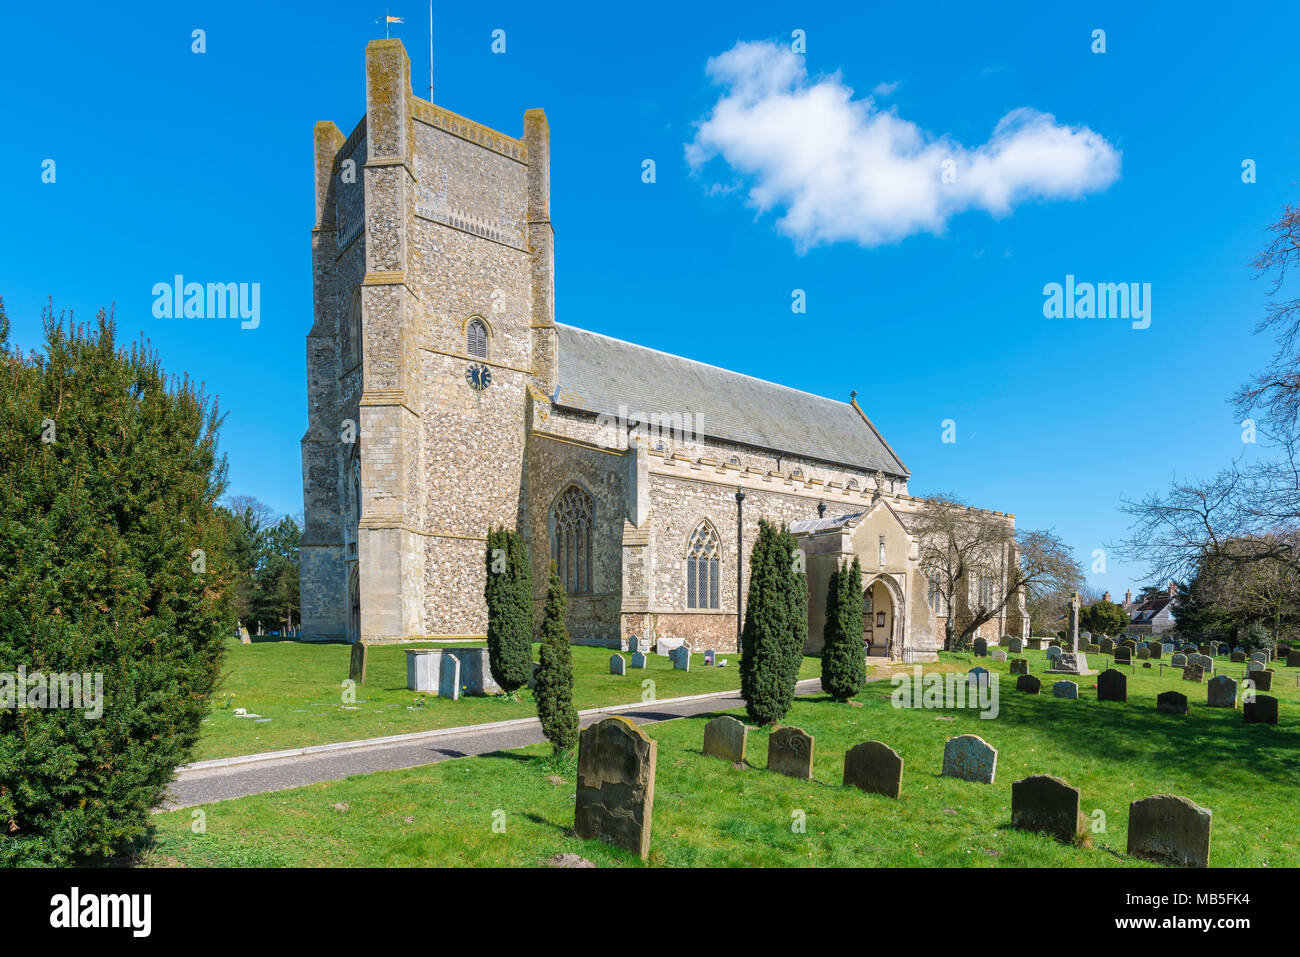 Church Suffolk, view of St Bartholomew's Church in the Suffolk town of Orford, East Anglia, UK. - Stock Image